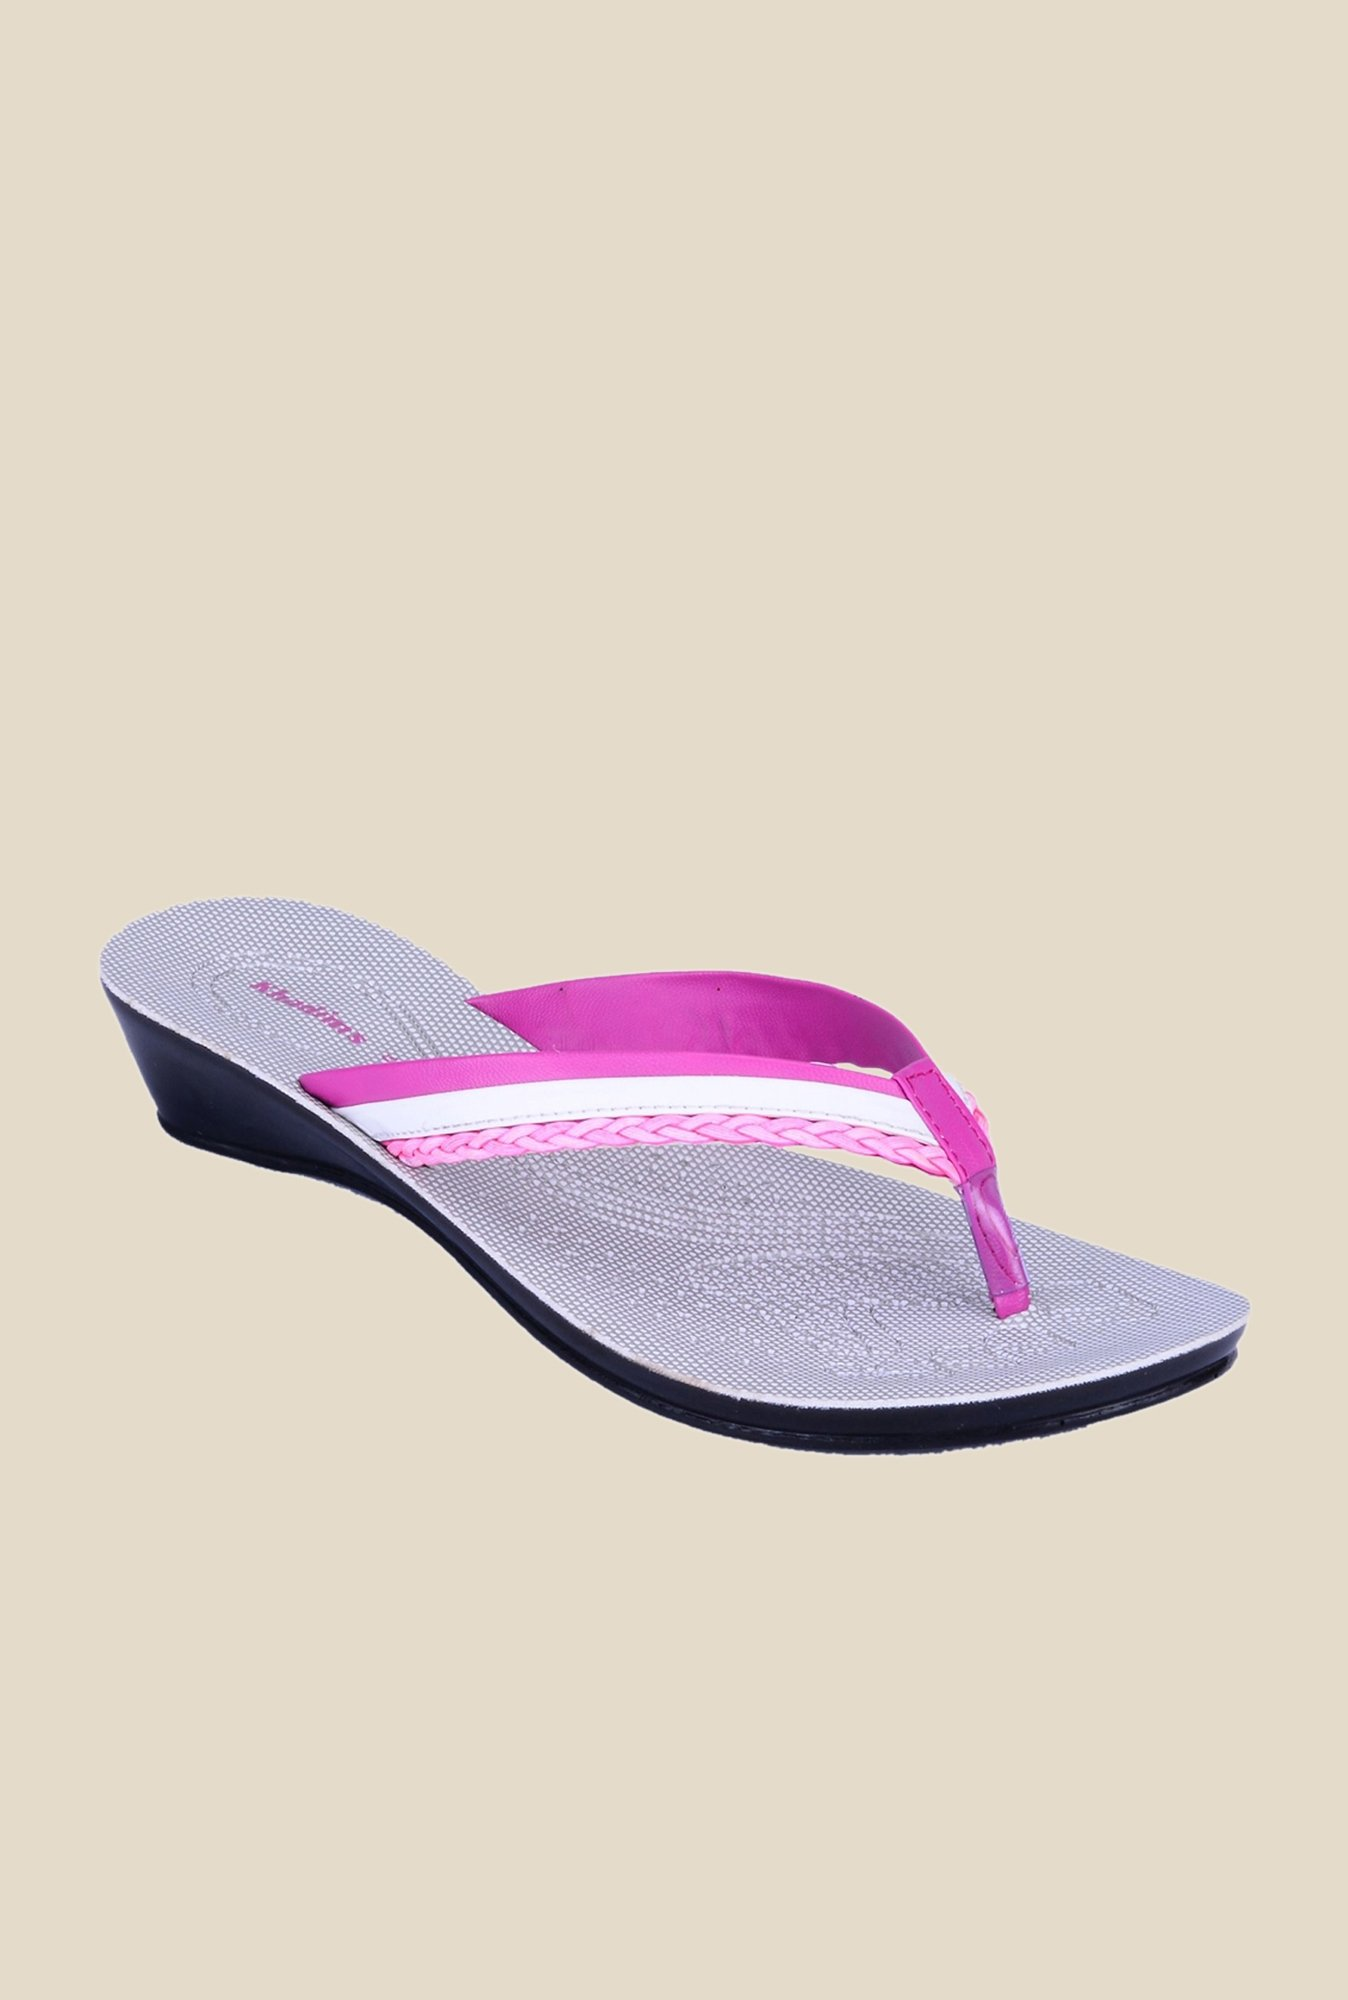 Khadim's Pink & White Thong Sandals